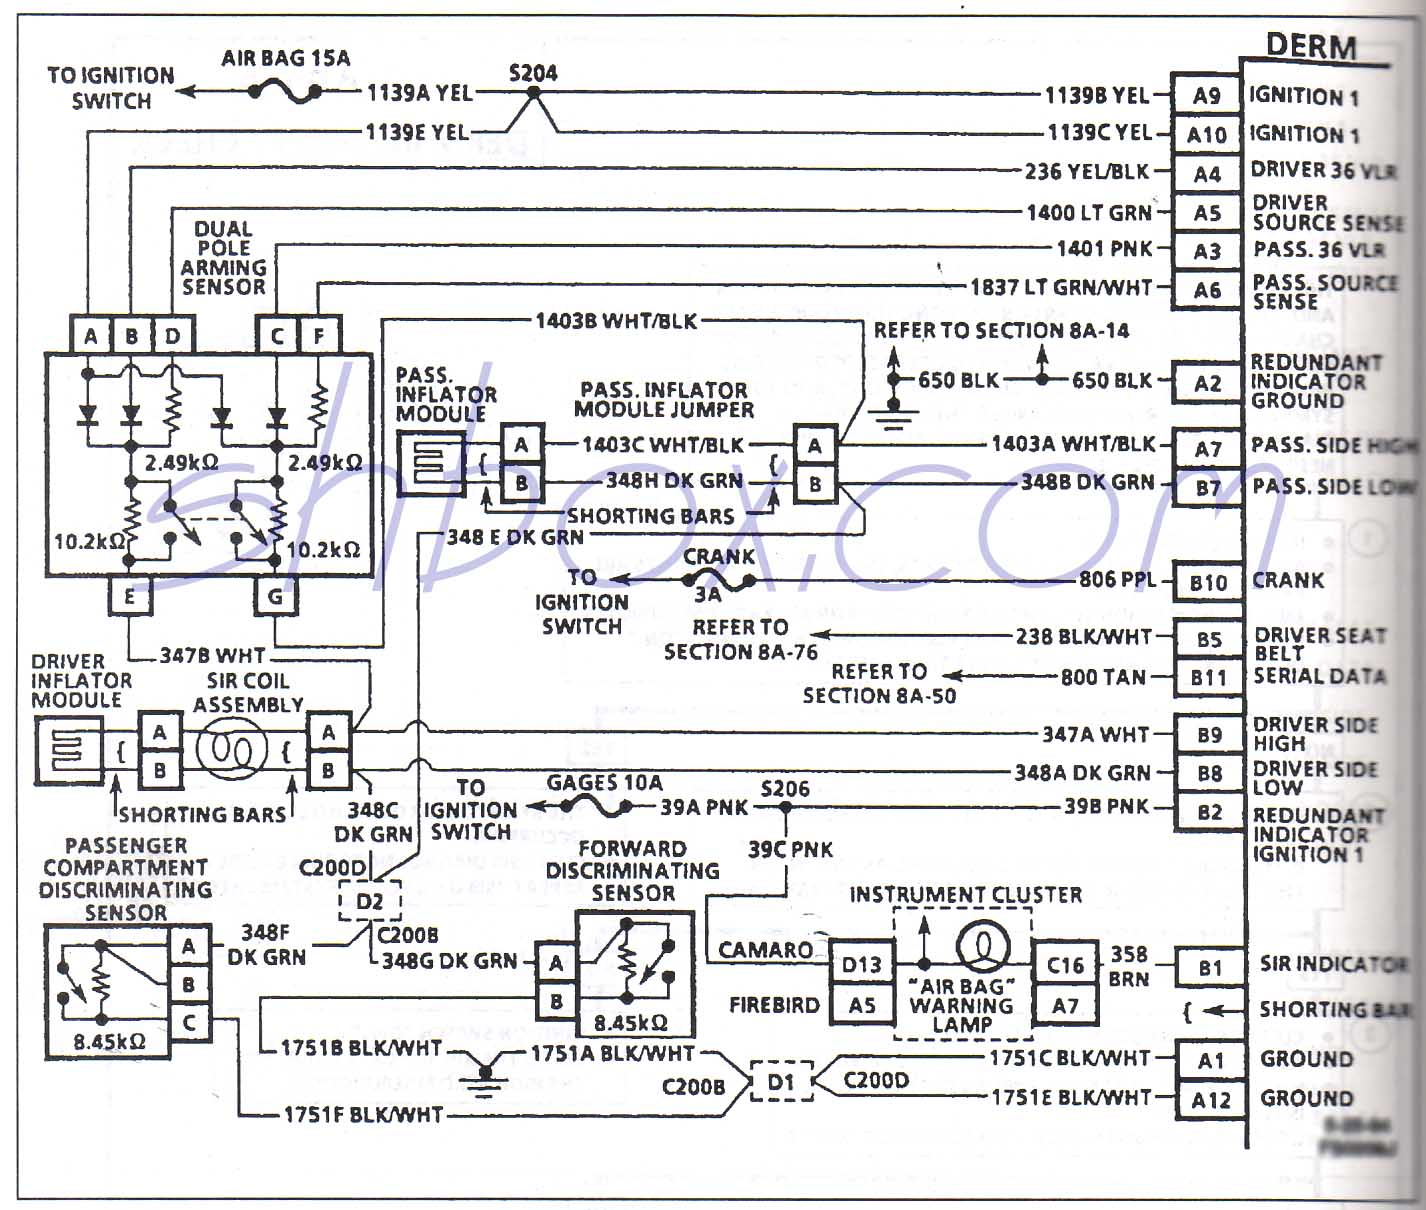 1995 Chevy Caprice Wiring Harness Smart Diagrams Iac Diagram 94 Lt1 Get Free Image About Rear End